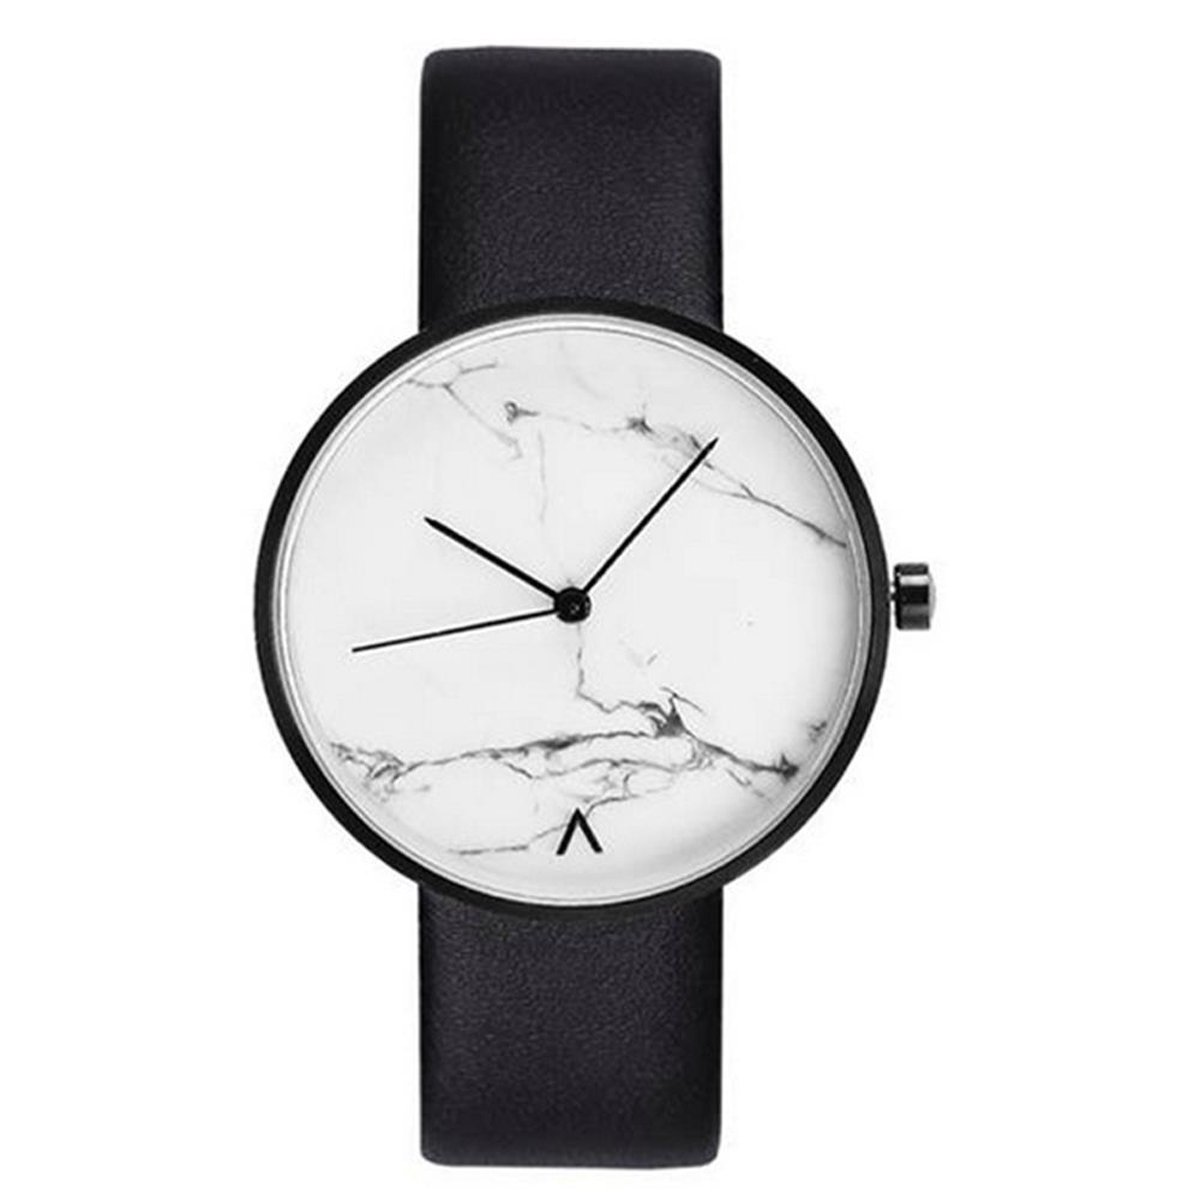 Unisex Men Women Watch Quartz Movement Couple Watches Marble Cover Dial Genuine leather Strap Boy Girl Watches Casual Students Wristwatch (White) by AEHIBO (Image #1)